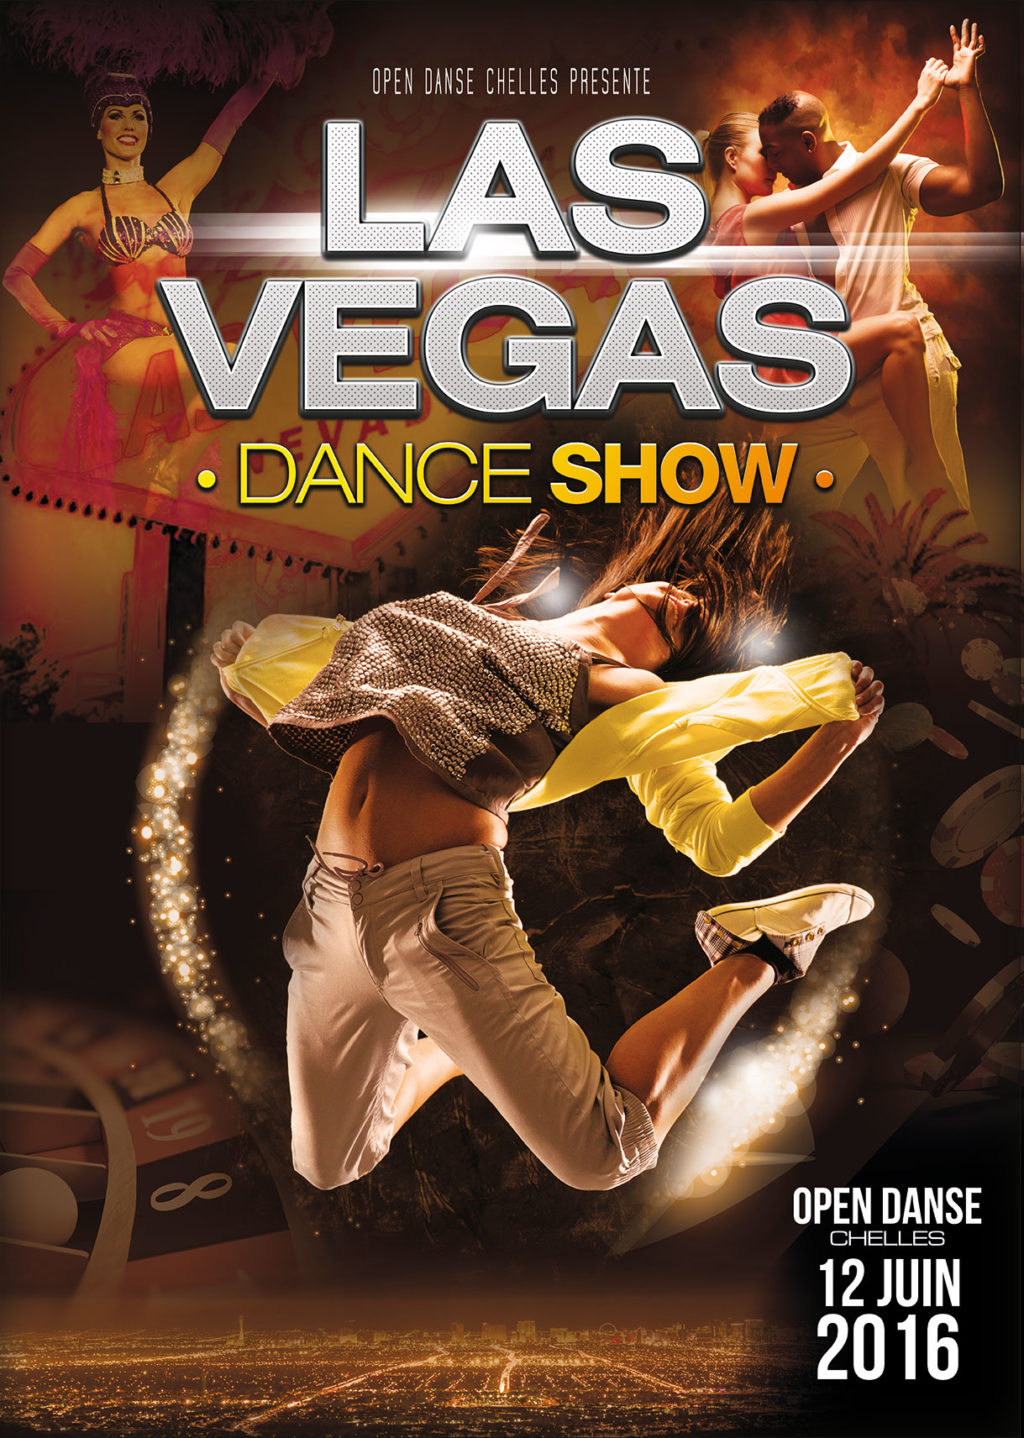 OPEN-DANSE-LAS-VEGAS-final